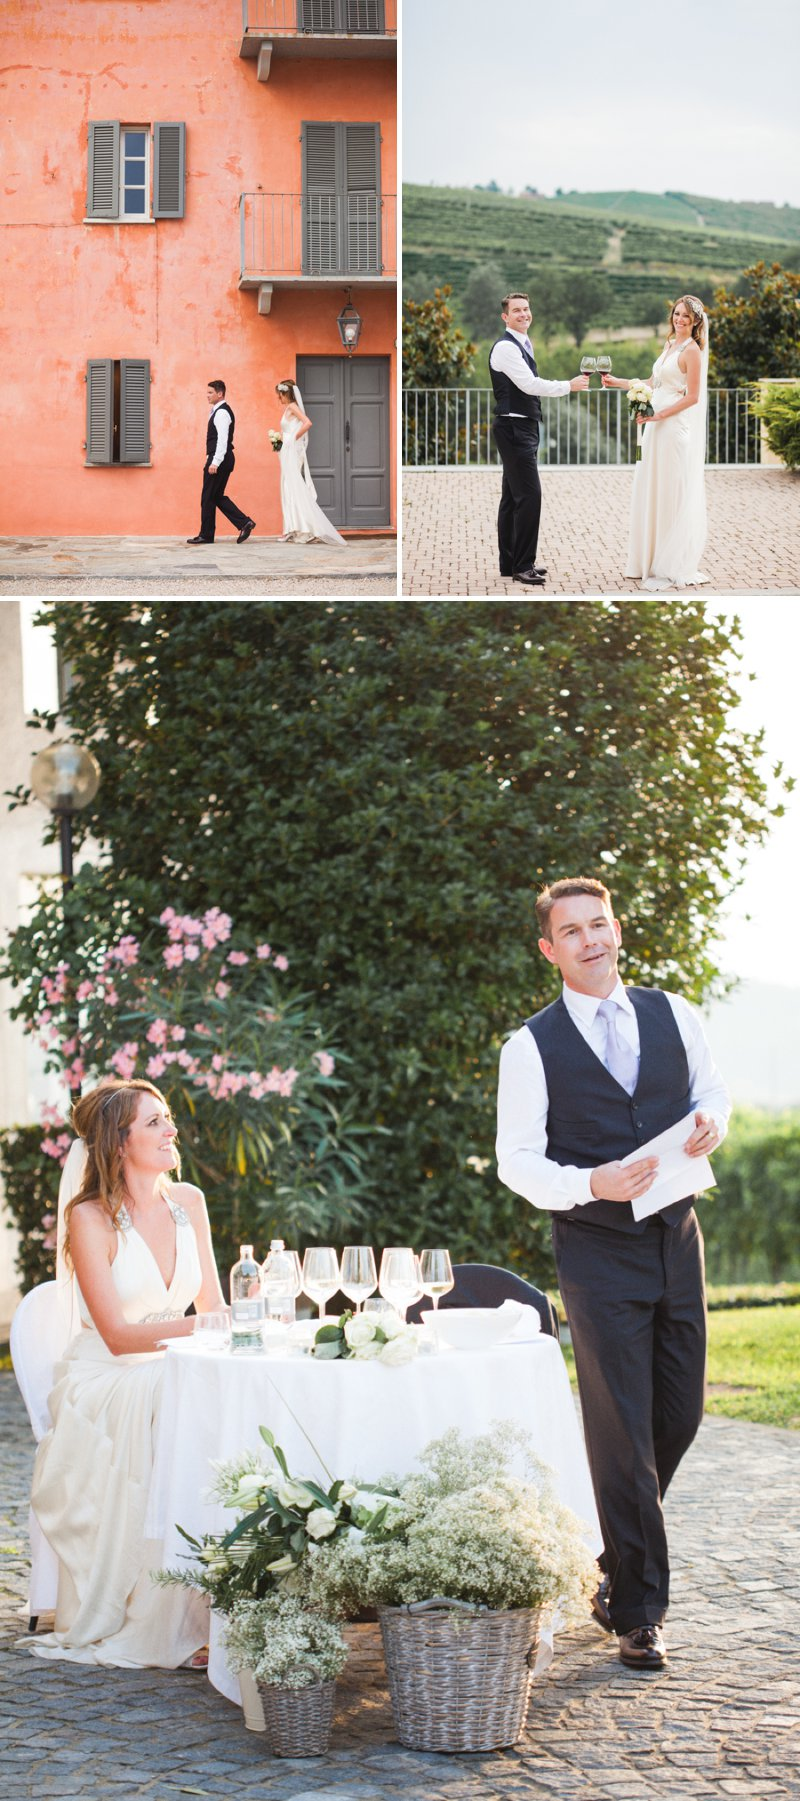 Elegant Wedding In Italy At The Locanda del Pilone Hotel And Restaurant With Bride In Julianne By Jenny Packham And Groom In Tom Ford Suit With A Five Course Italian Banquet 7